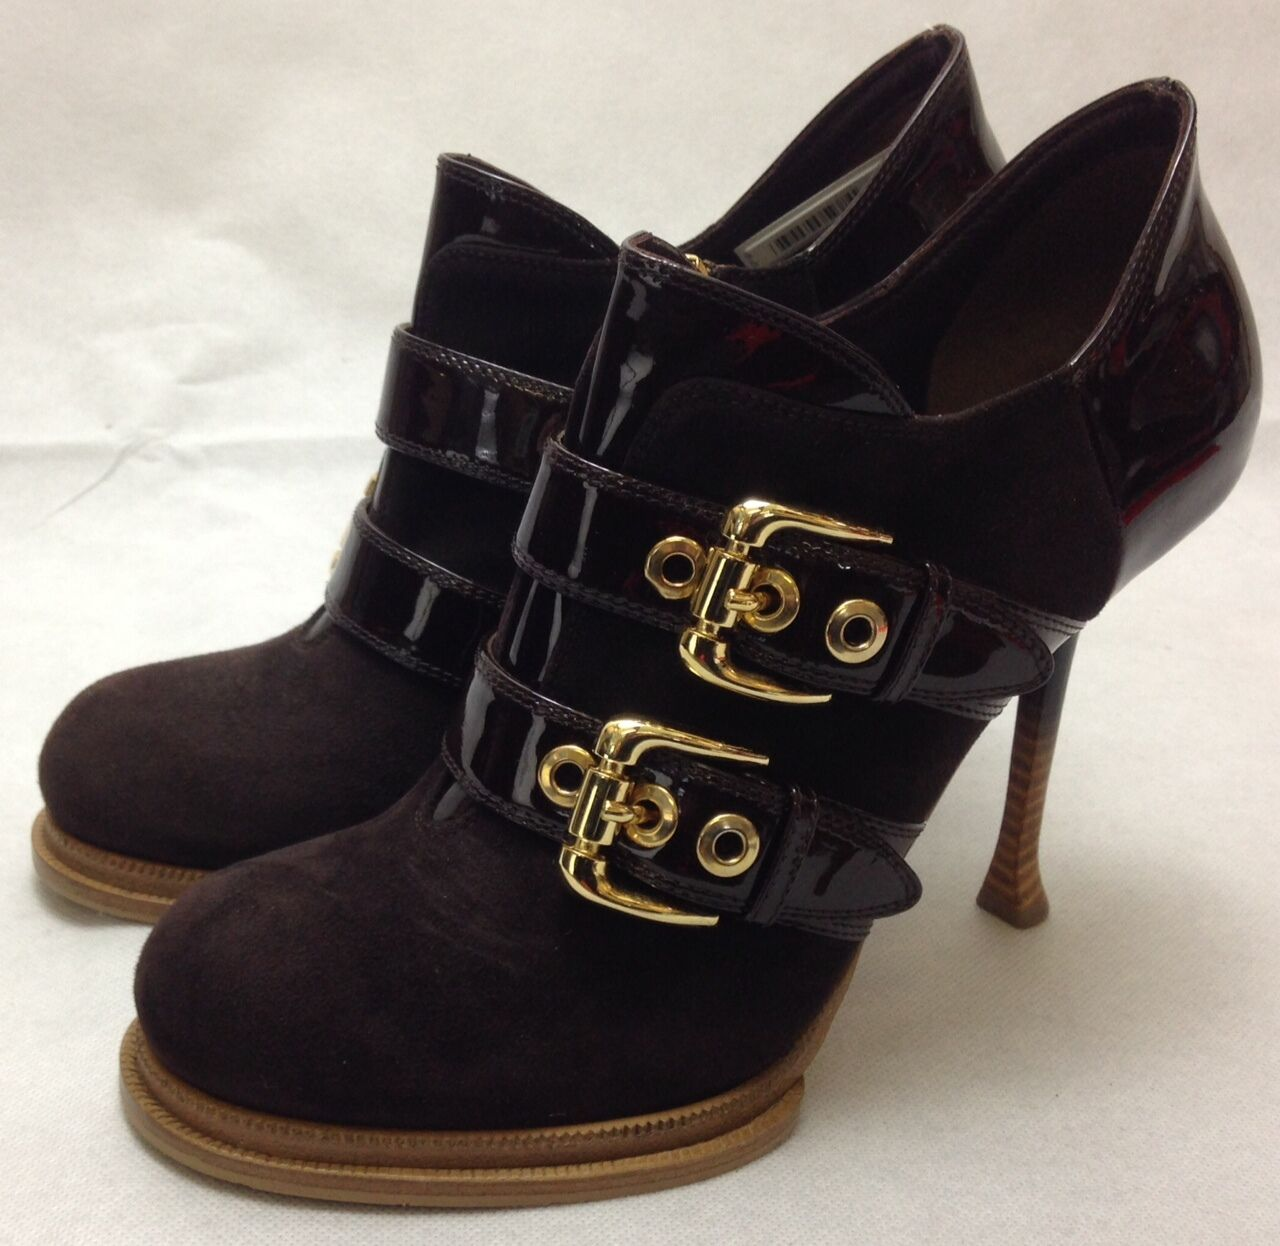 Gianmarco Lorenzi couture brown ankle boots with gold buckles.   Size 40